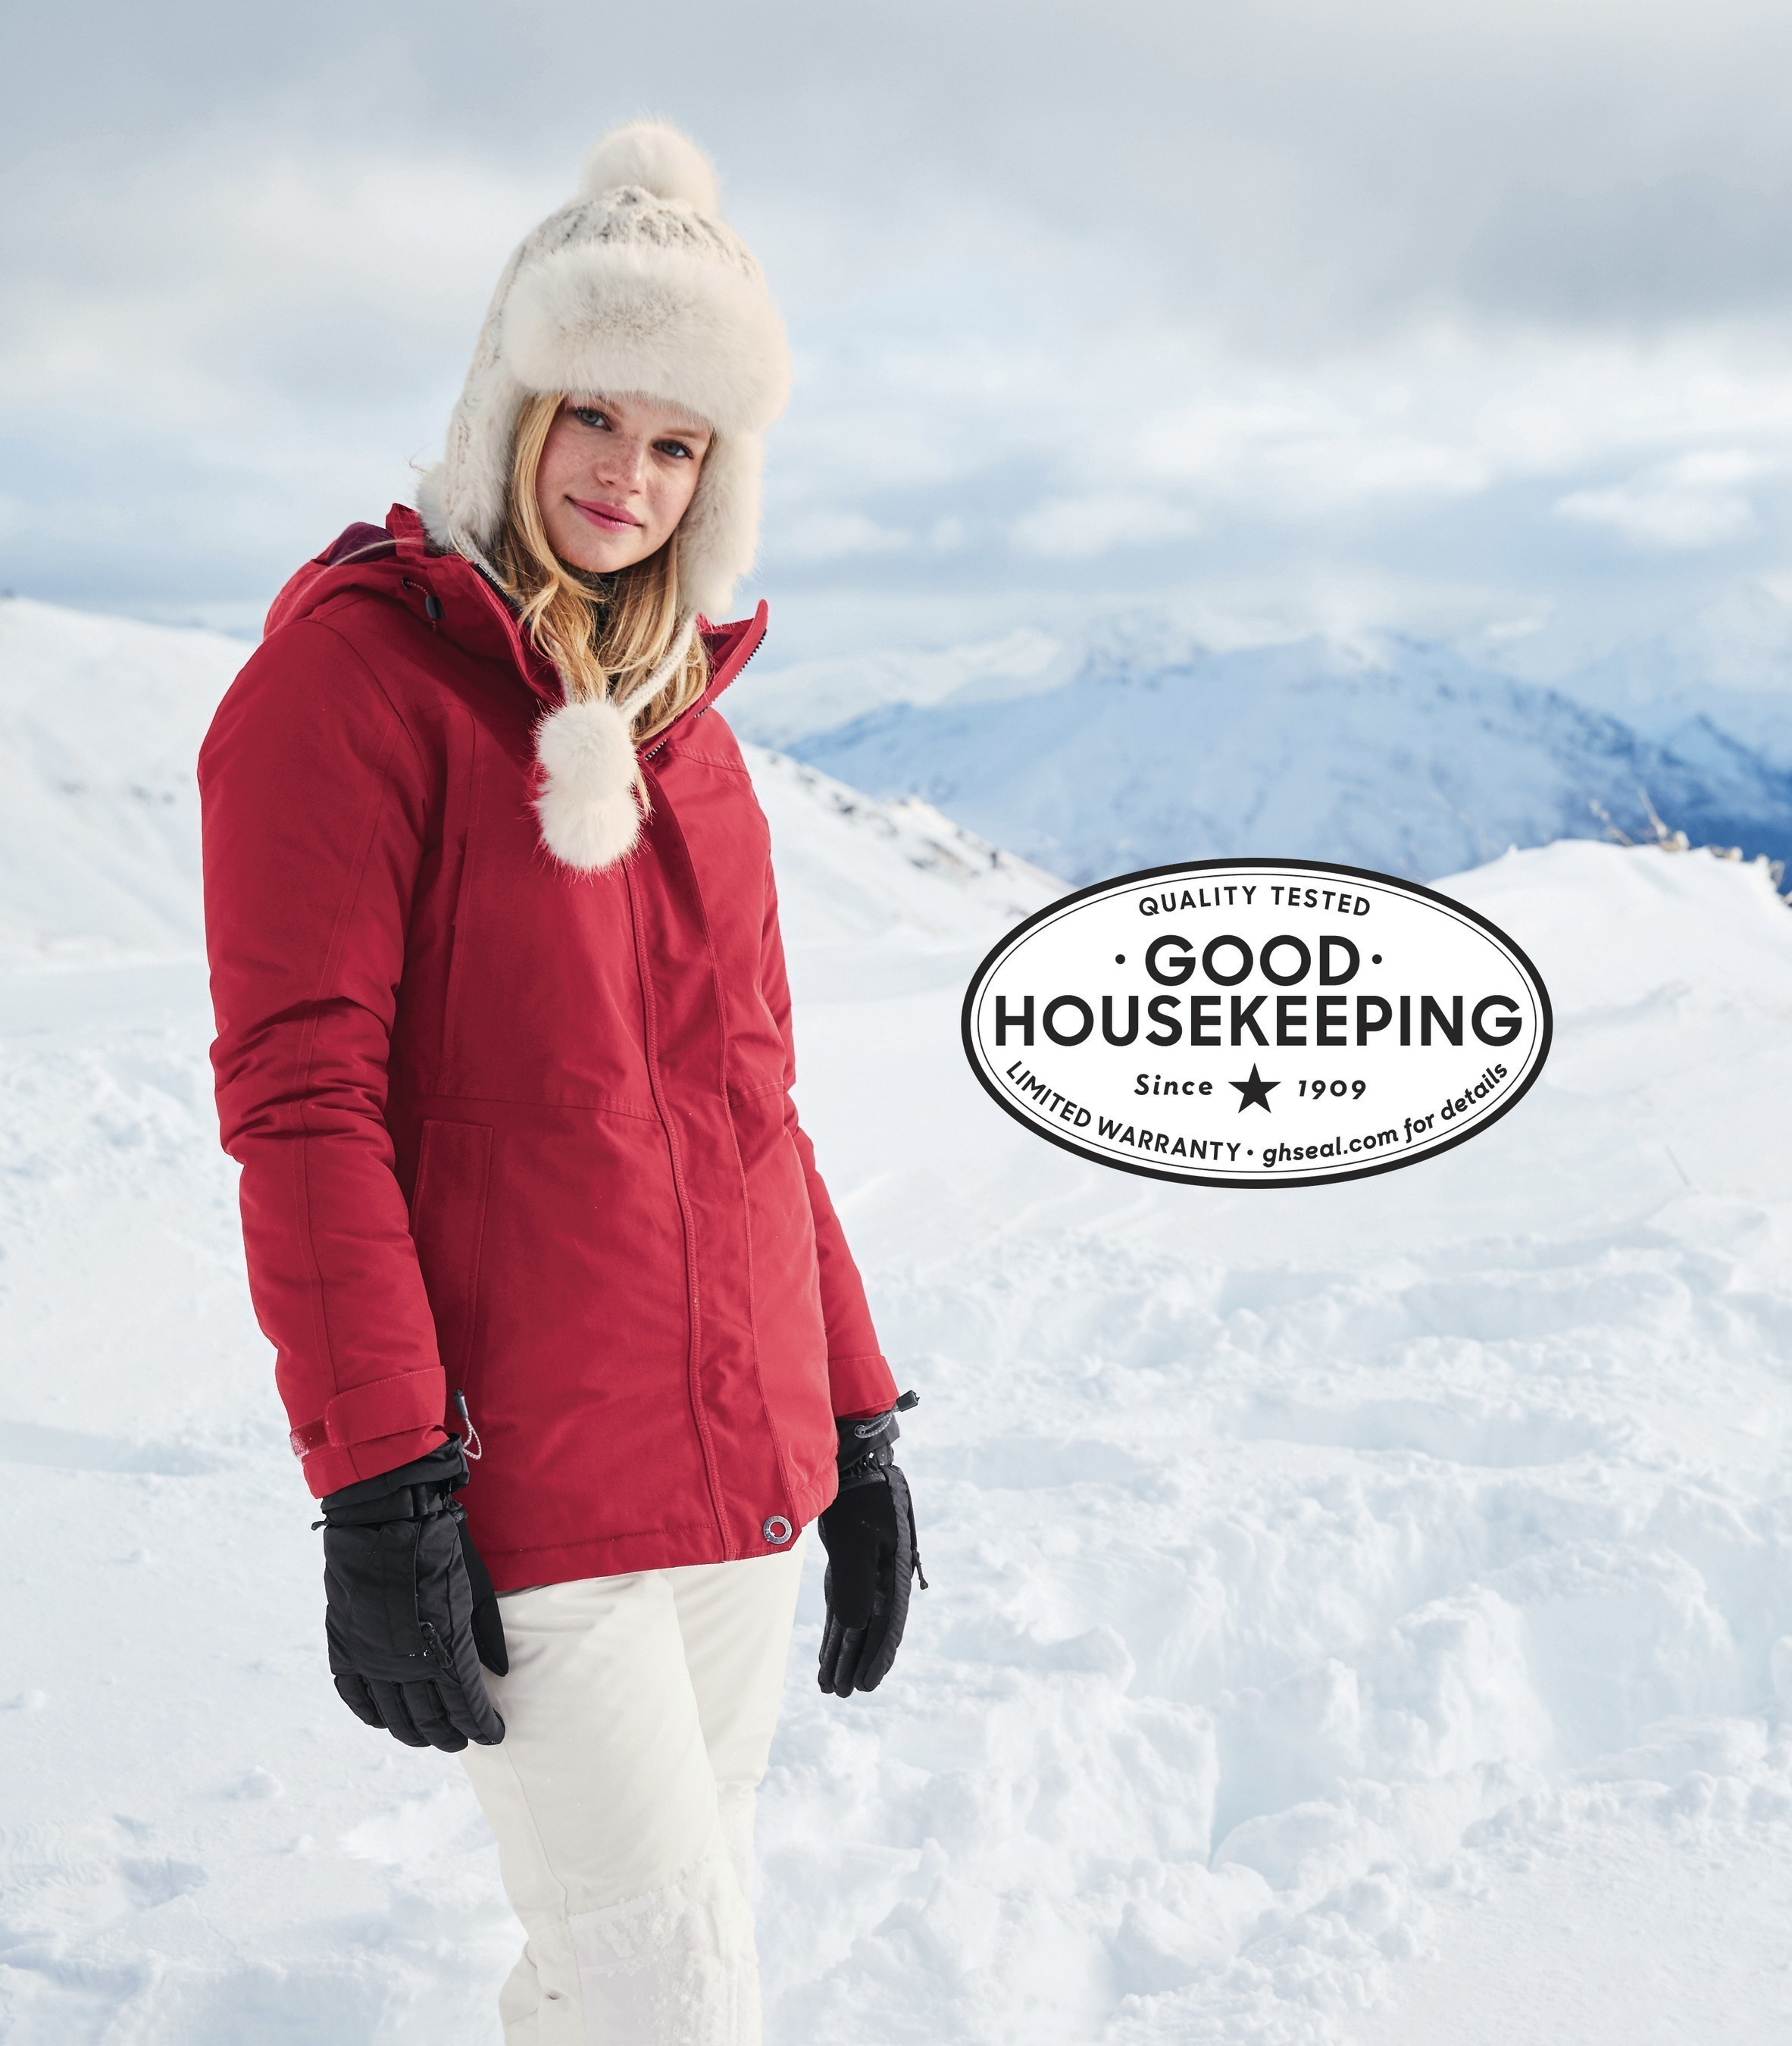 The Lands' End Squall Parka has earned the coveted Good Housekeeping Seal, one of the most recognized consumer emblems in the world.  With its waterproof and windproof features, the Lands' End Squall Parka provides guaranteed protection when winter comes full force.  Available at www.landsend.com.